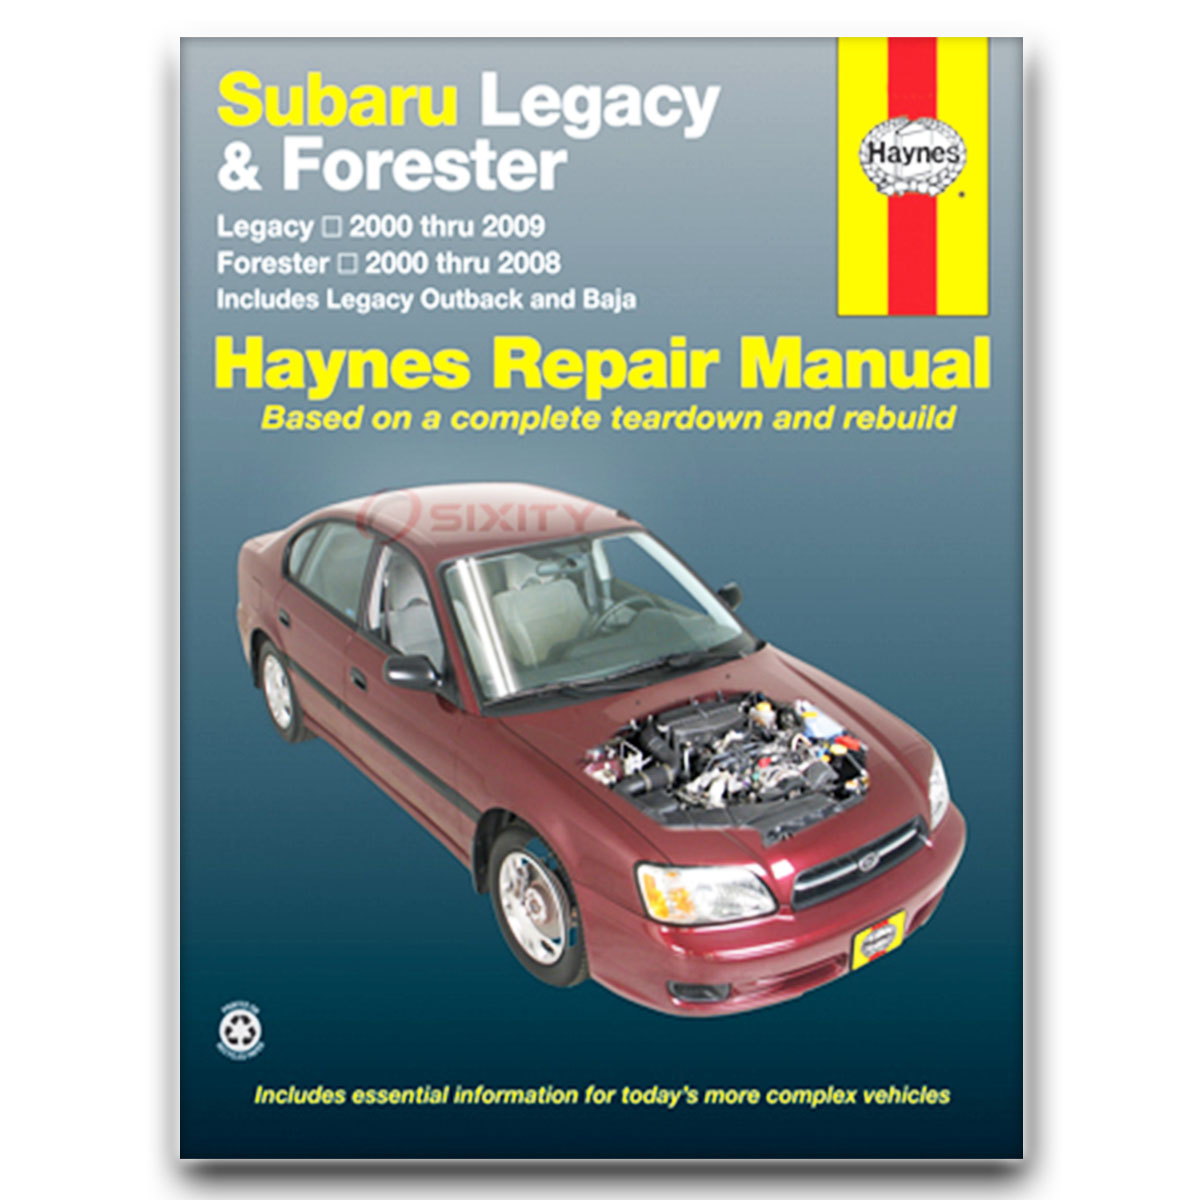 subaru baja haynes repair manual sport turbo base shop service rh ebay com 2006 subaru baja service manual 2003 subaru baja service manual